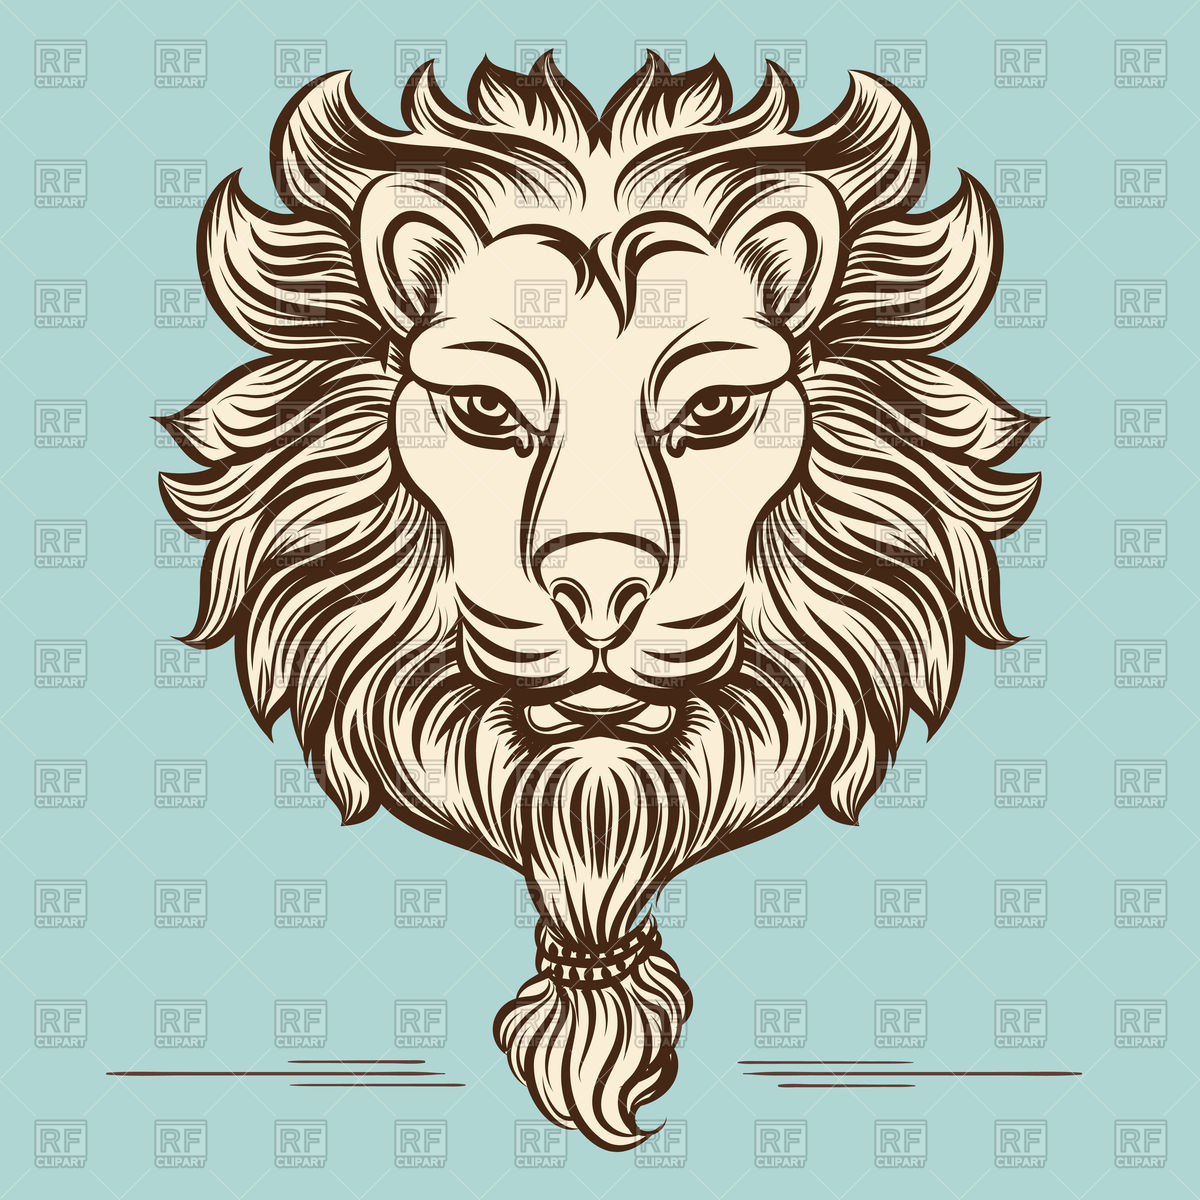 1200x1200 Vintage Lion Head Print On Blue Background Vector Image Vector